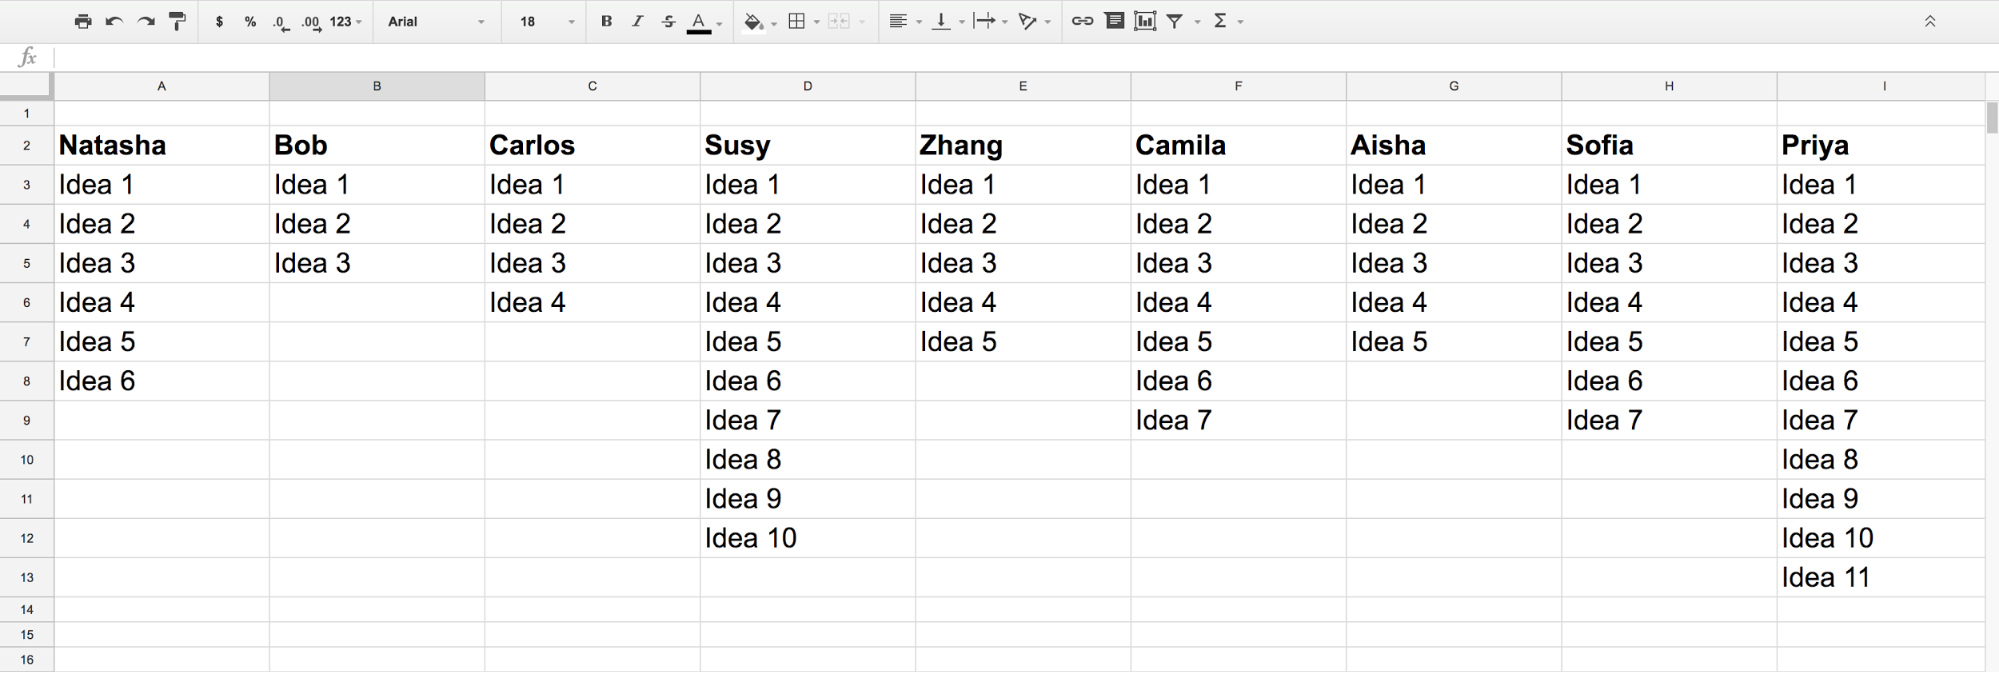 Using spreadsheets enables UX workshop productivity